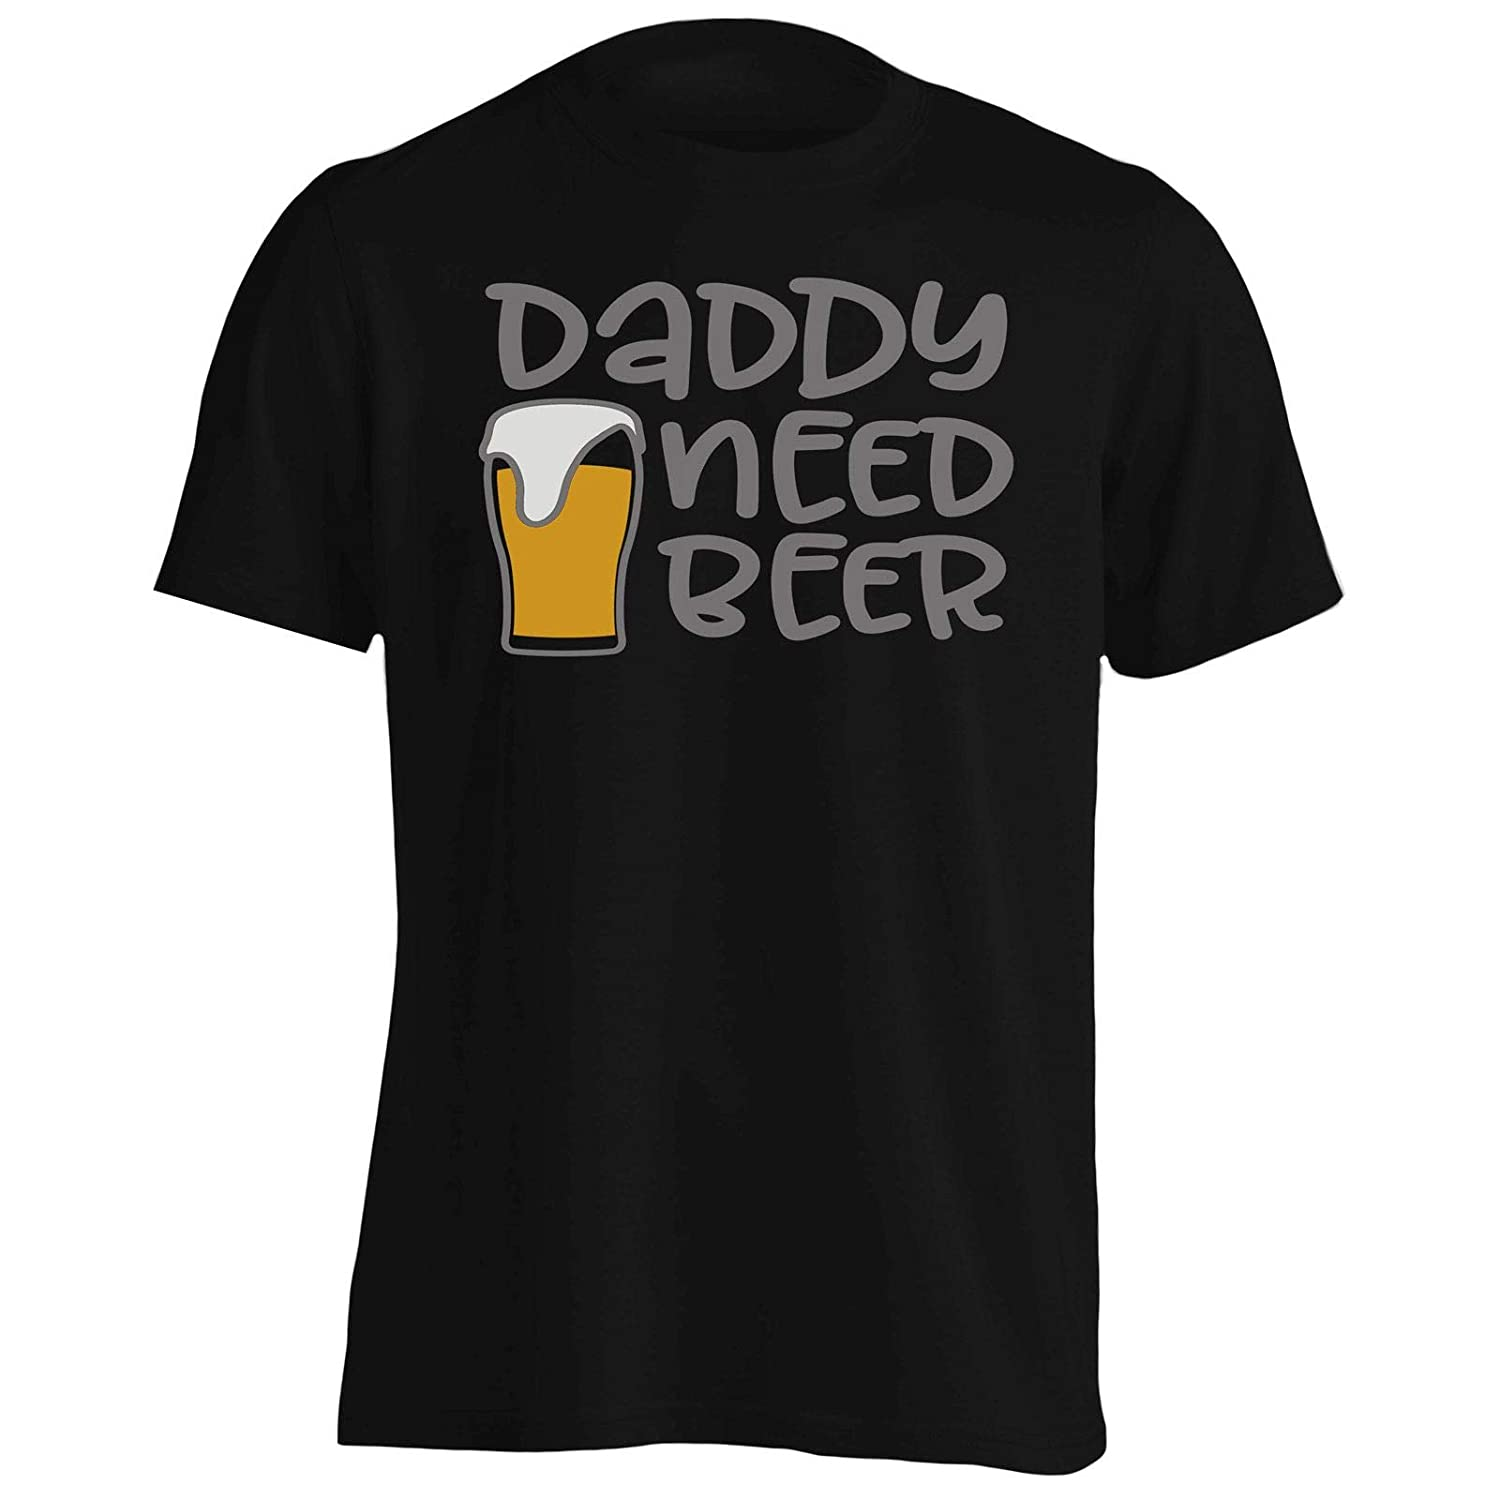 Daddy Need Beer Mens T-Shirt Tee gg205m